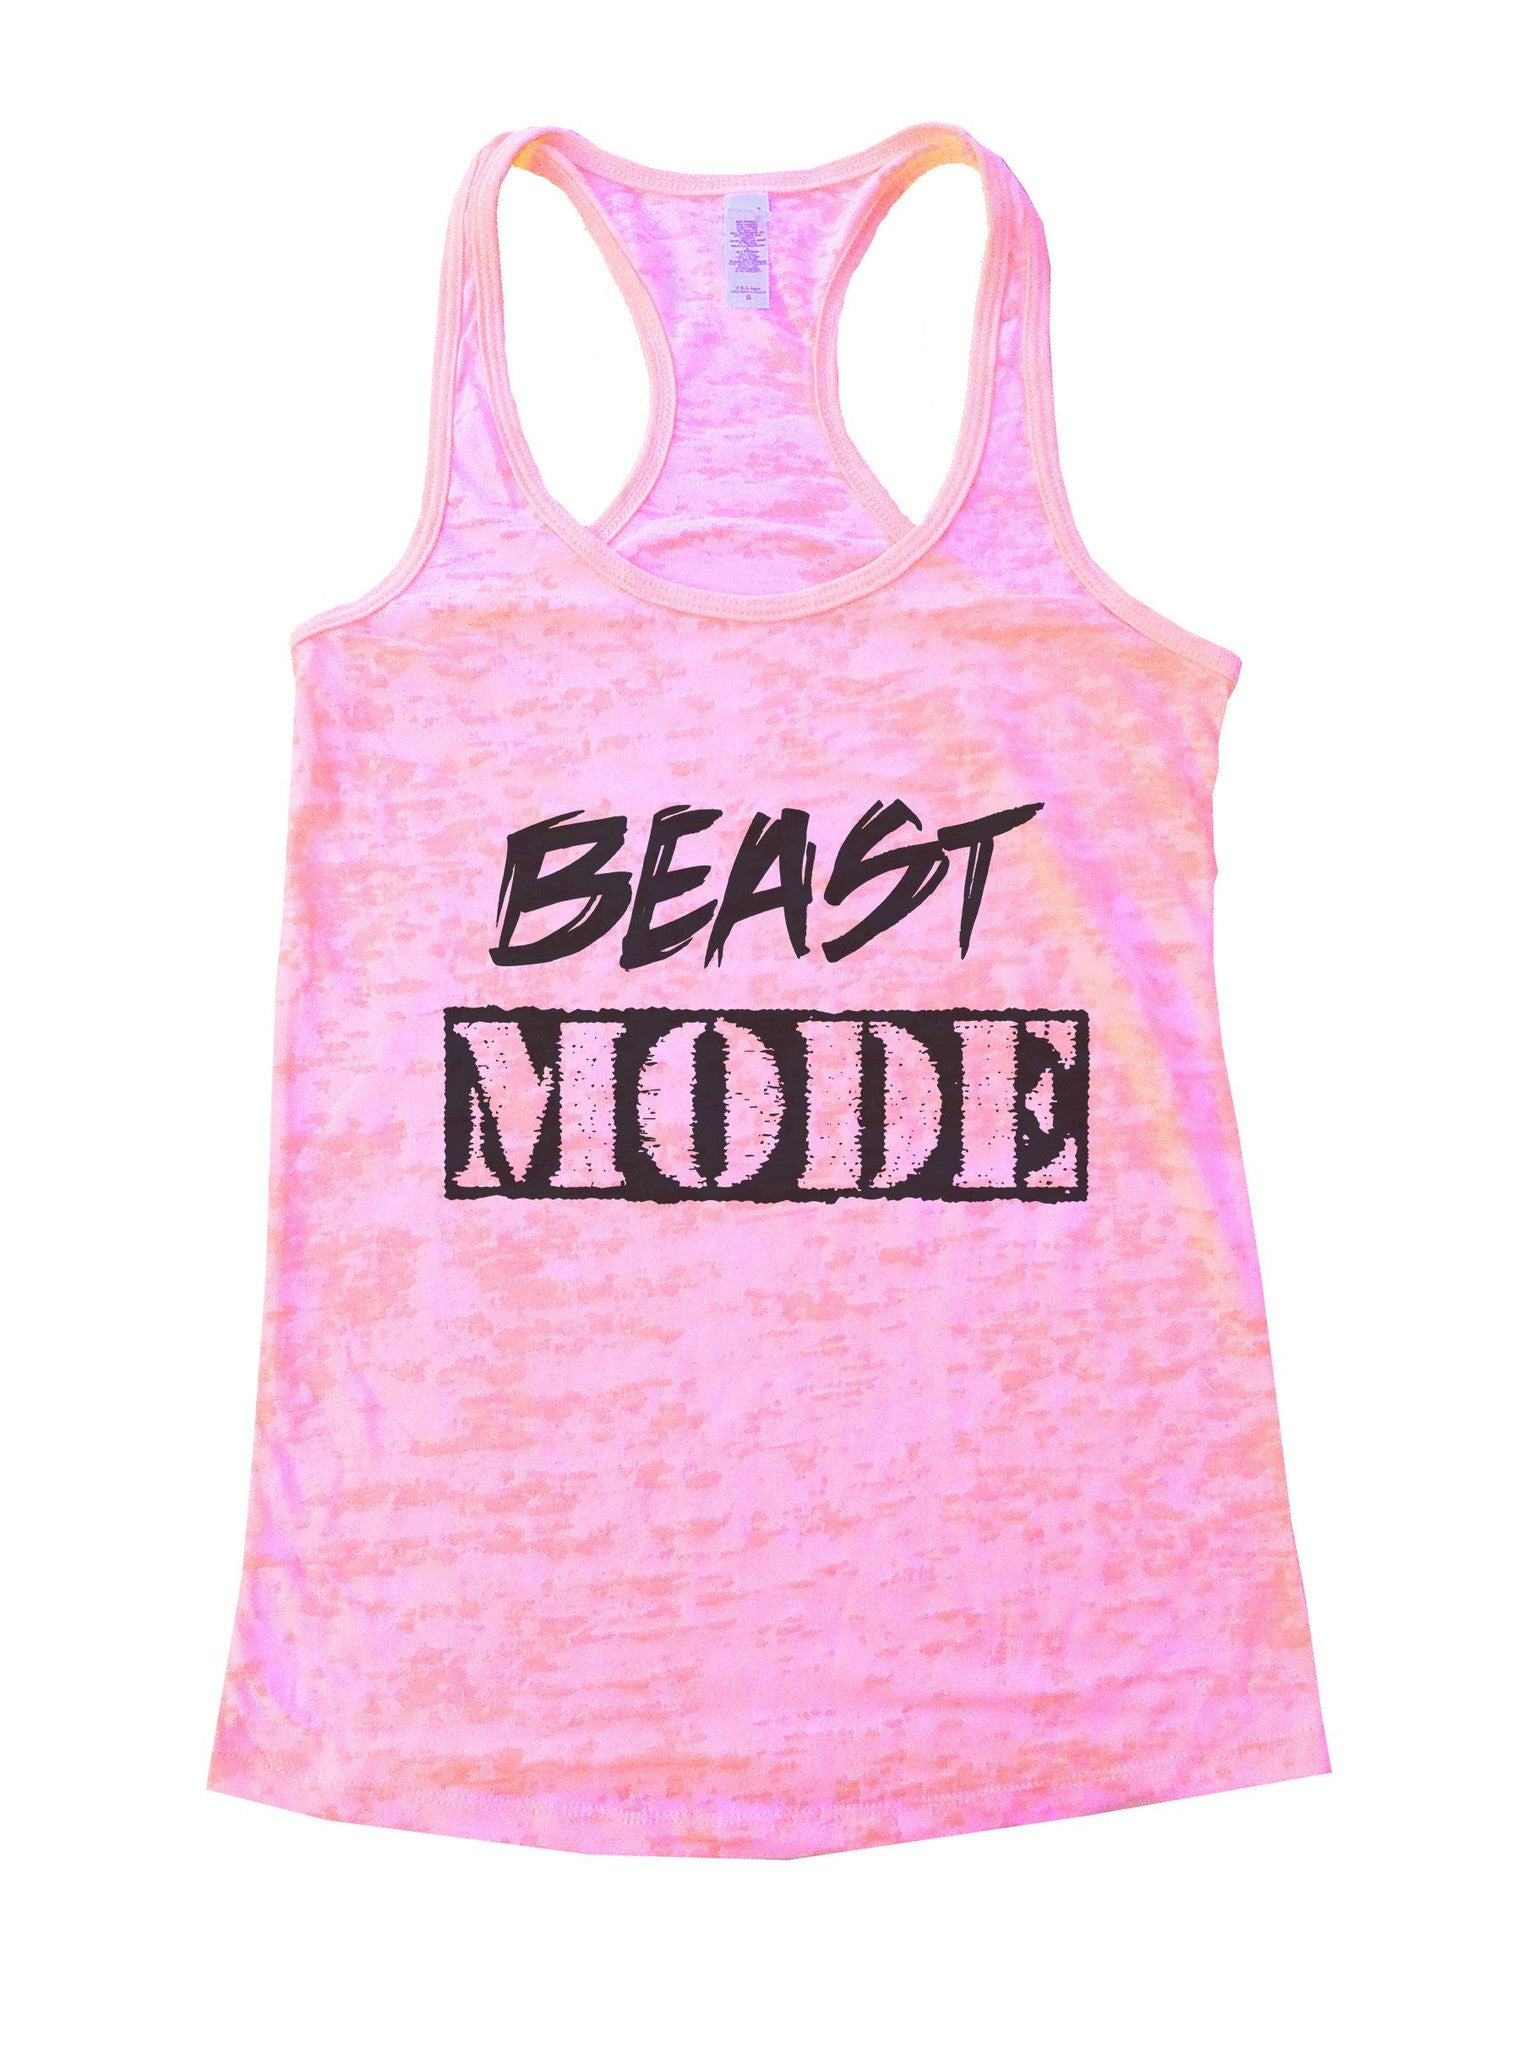 Beast Mode Burnout Tank Top By BurnoutTankTops.com - 823 - Funny Shirts Tank Tops Burnouts and Triblends  - 1